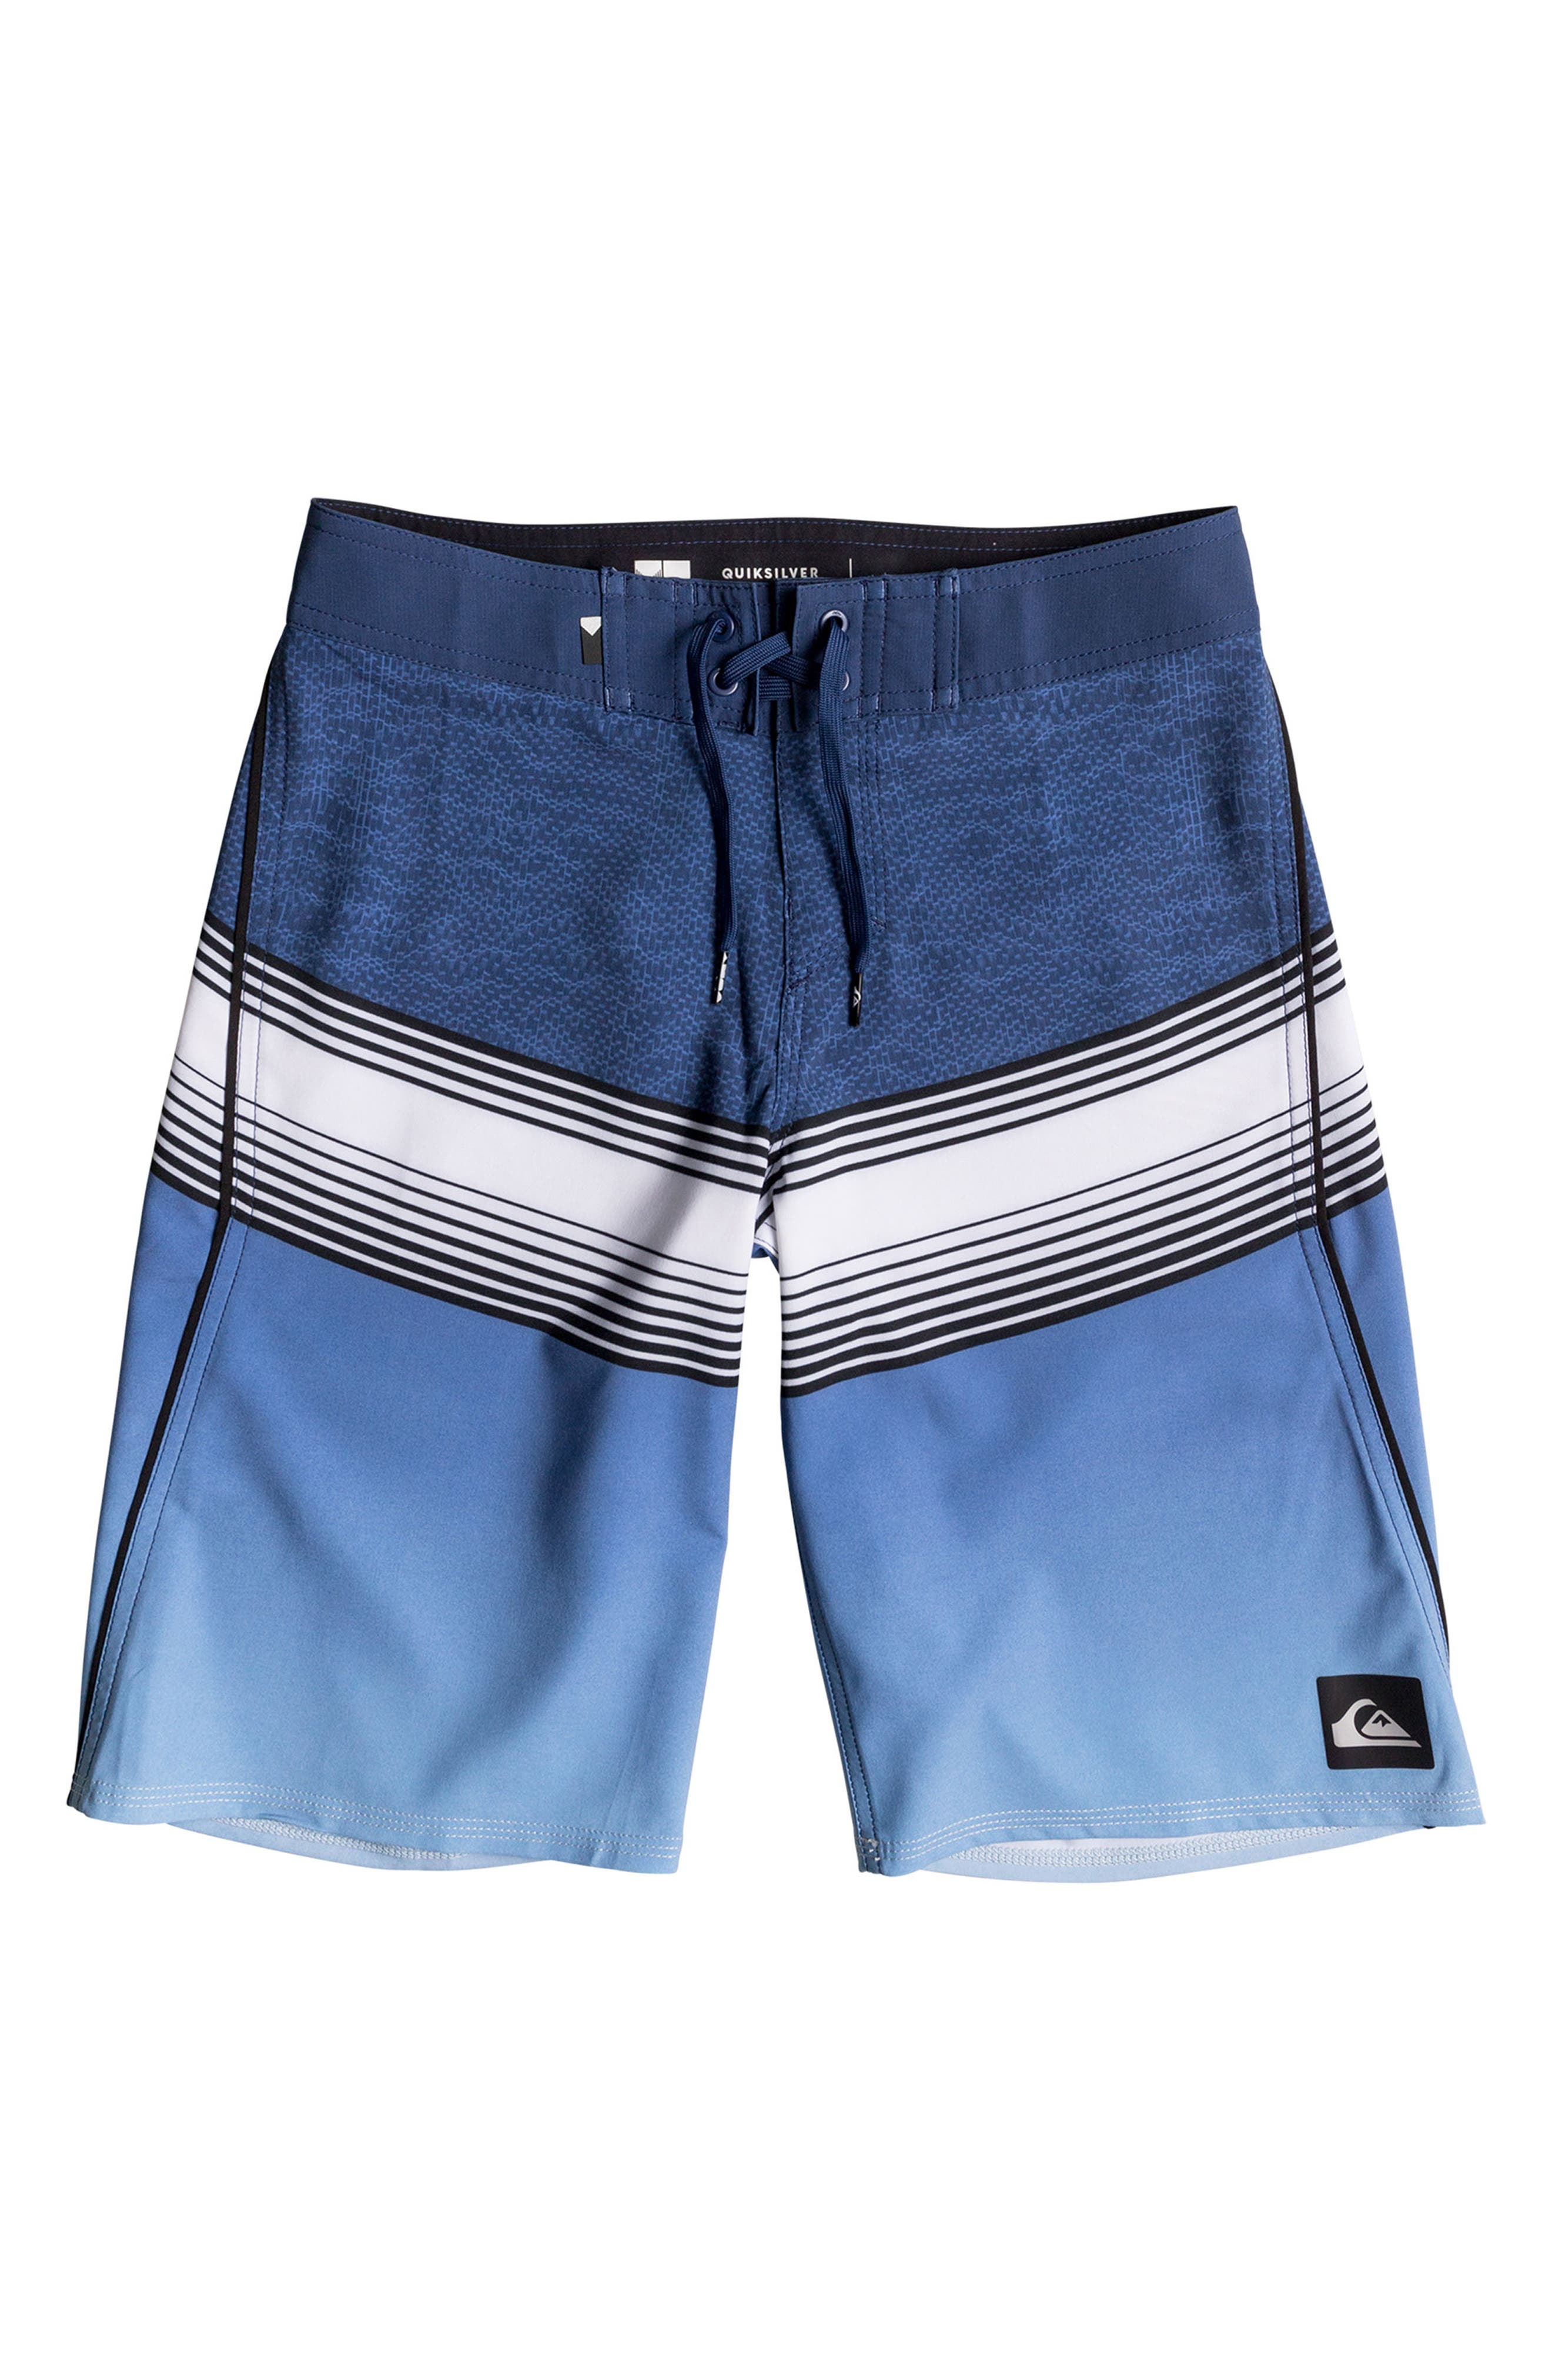 Division Fade Board Shorts,                         Main,                         color, Estate Blue